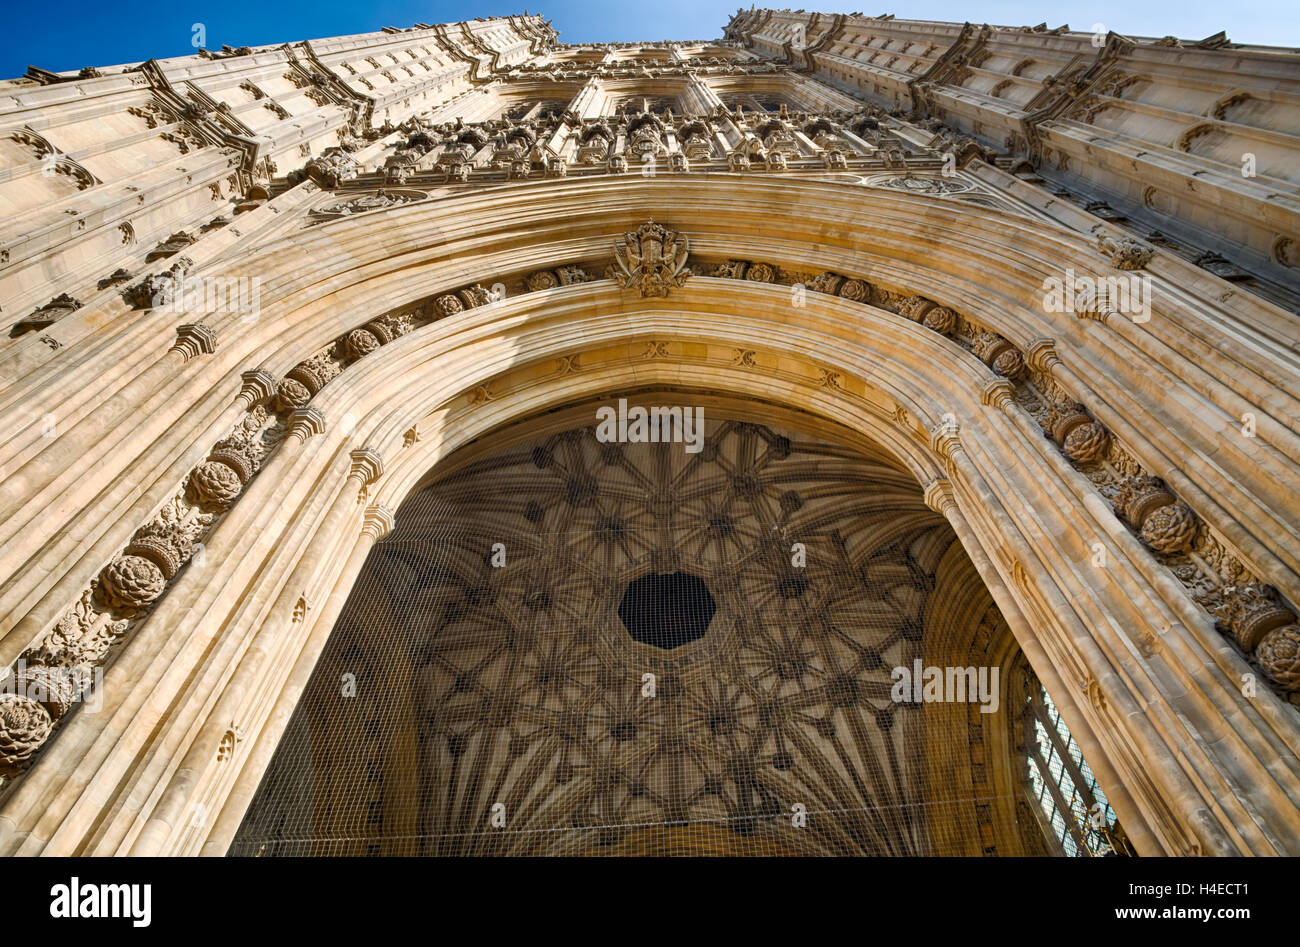 Looking upwards at the Victoria Tower and Sovereign's Entrance at the Palace of Westminster, London UK - Stock Image